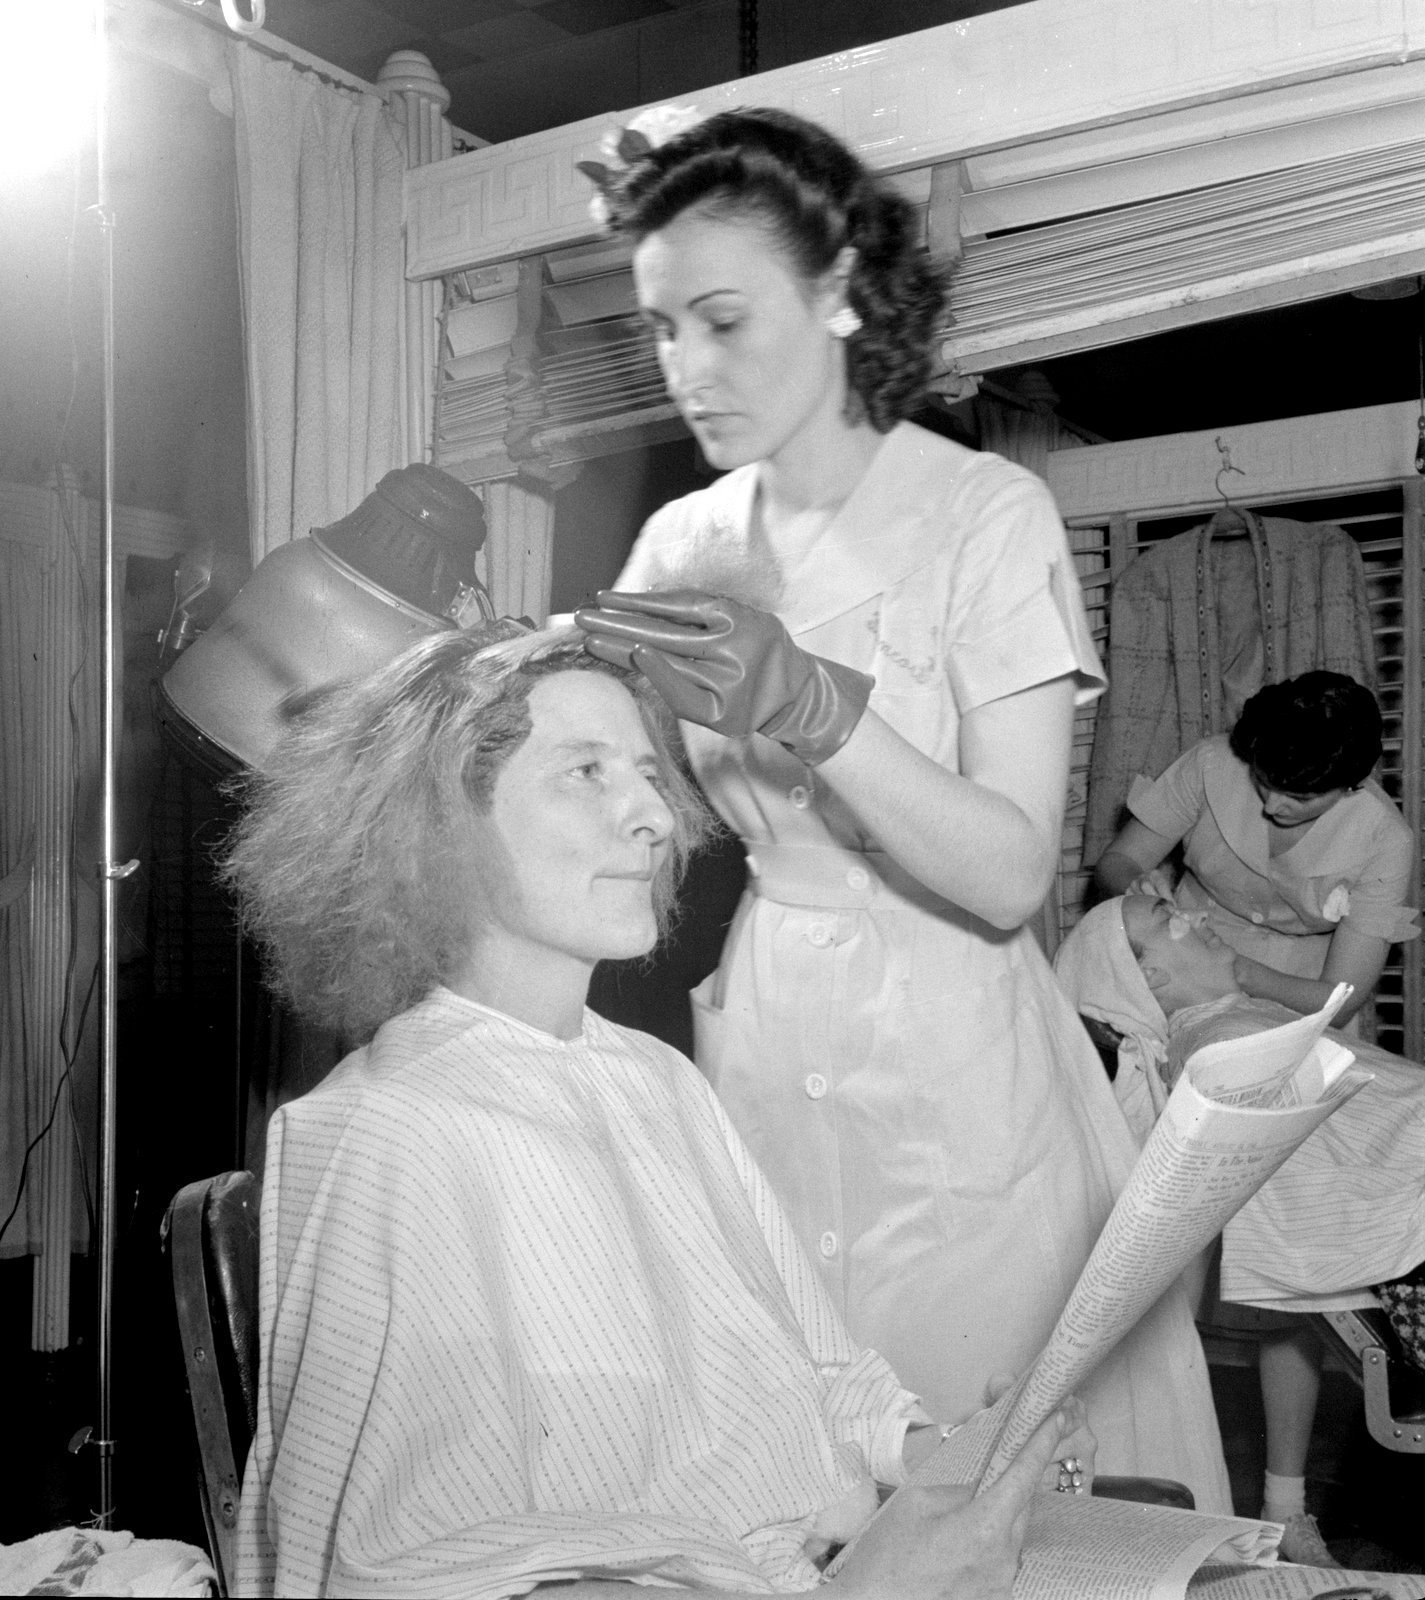 A salon professional highlights a woman's hair in the 1940s